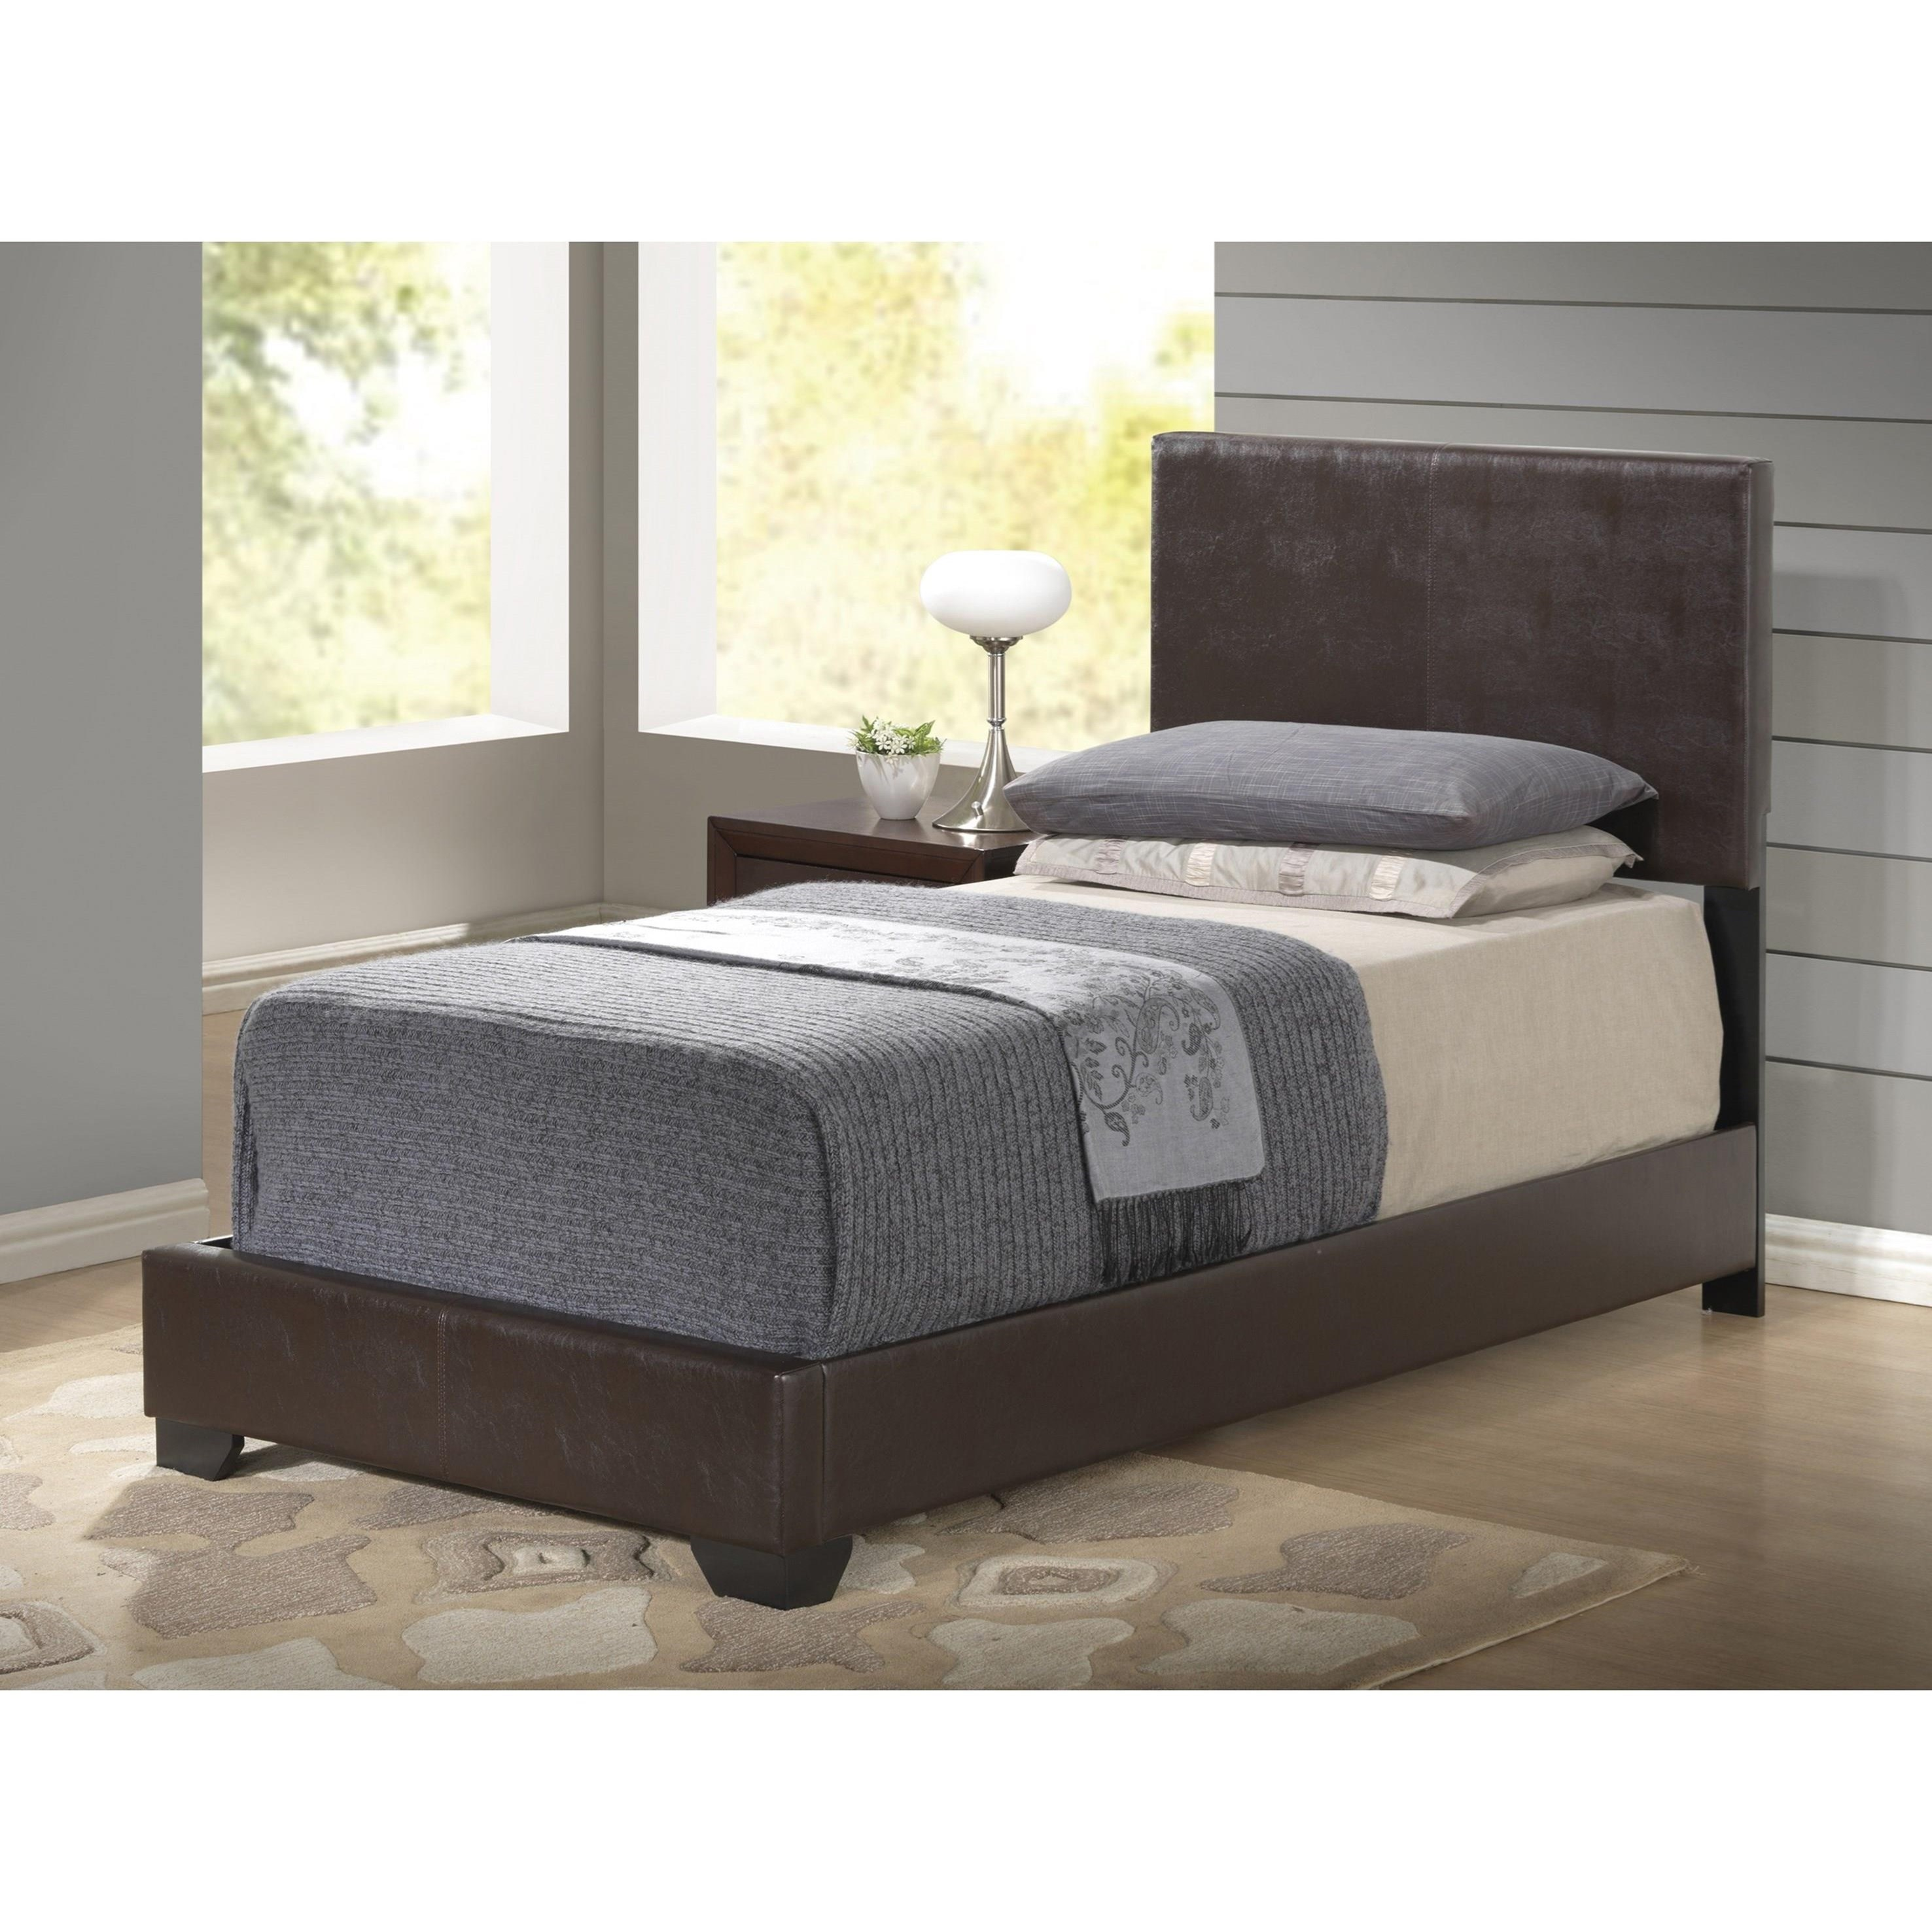 8103 Upholstered Twin Bed by Global Furniture at Nassau Furniture and Mattress